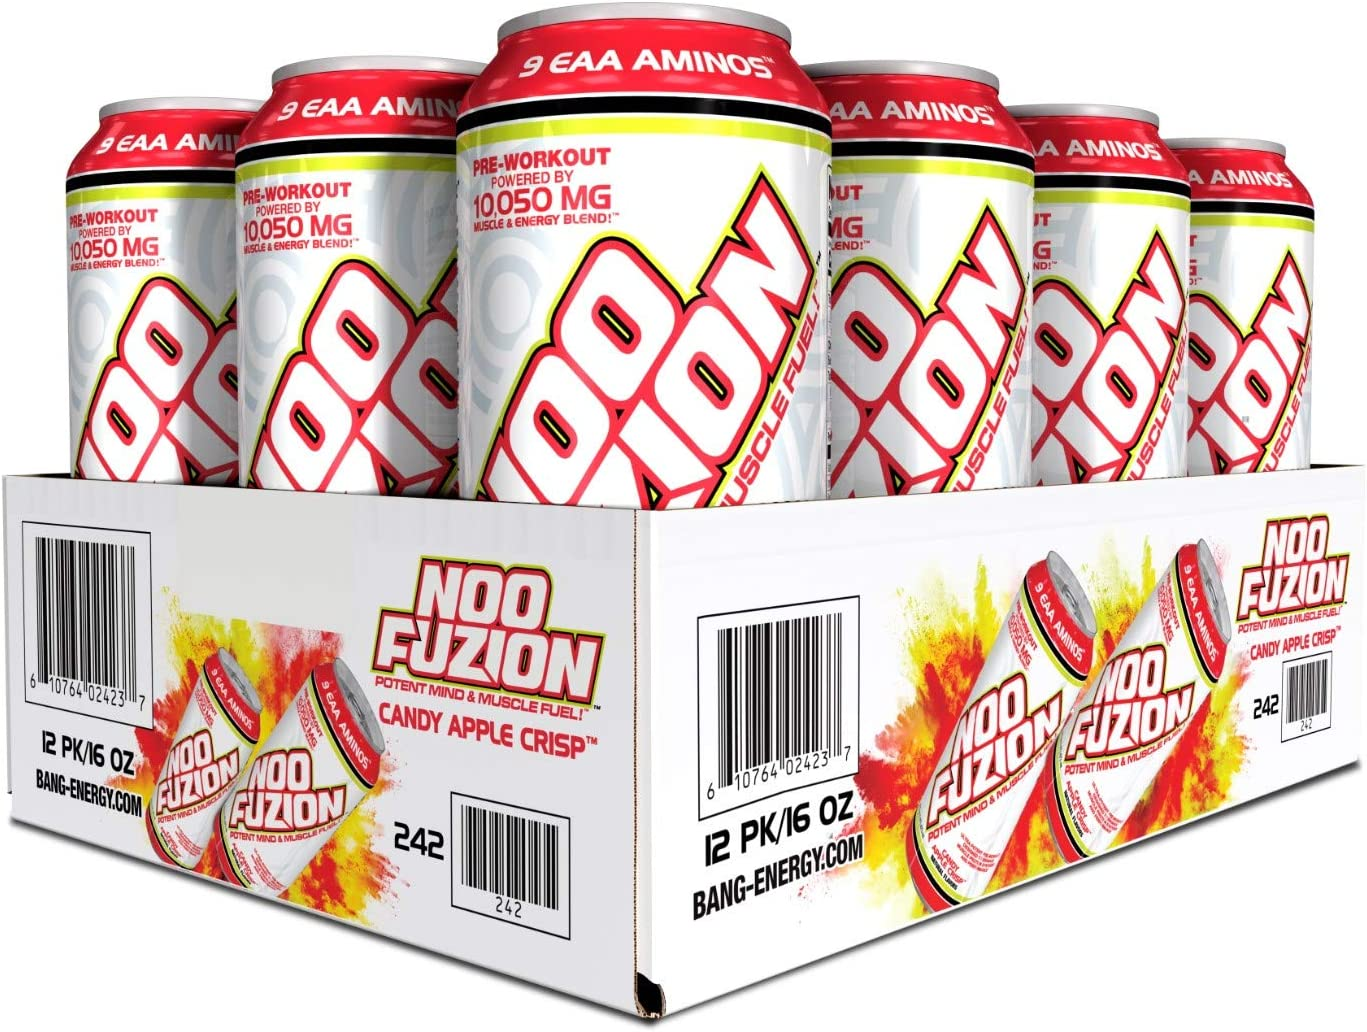 VPX NOO FUZION Potent Animer and price revision Mind Easy-to-use Fuel Muscle Carbonated PreWorkout Ene